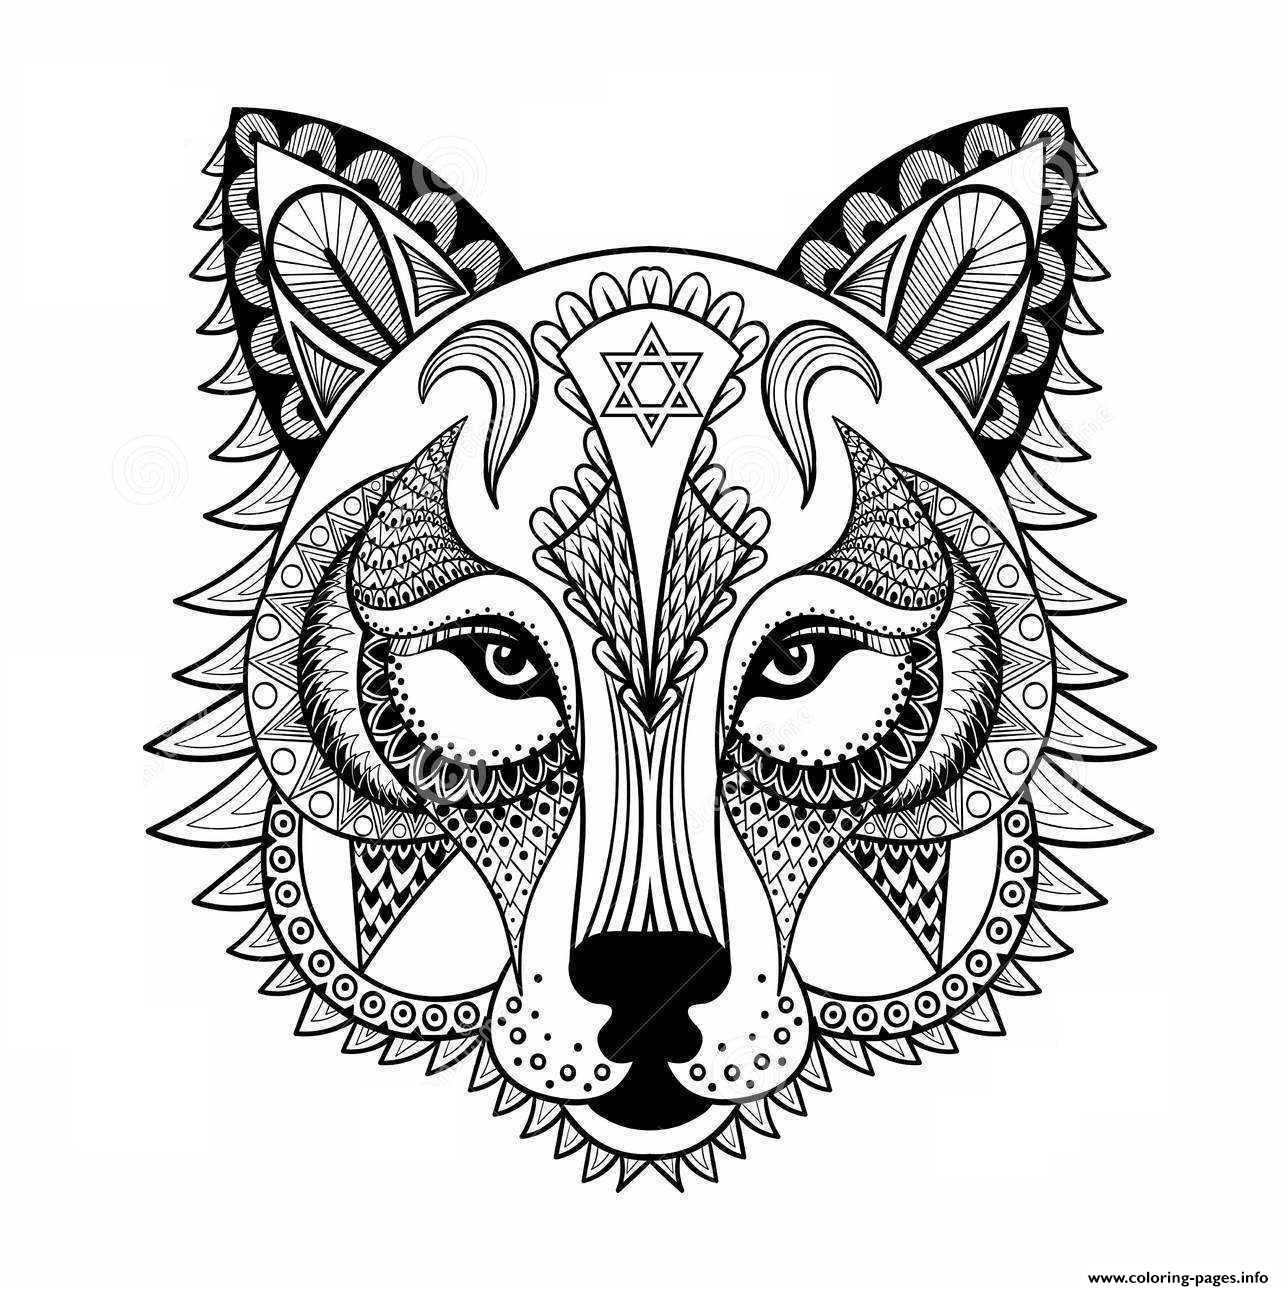 Colouring pages wolf - Colouring Pages Wolf 52